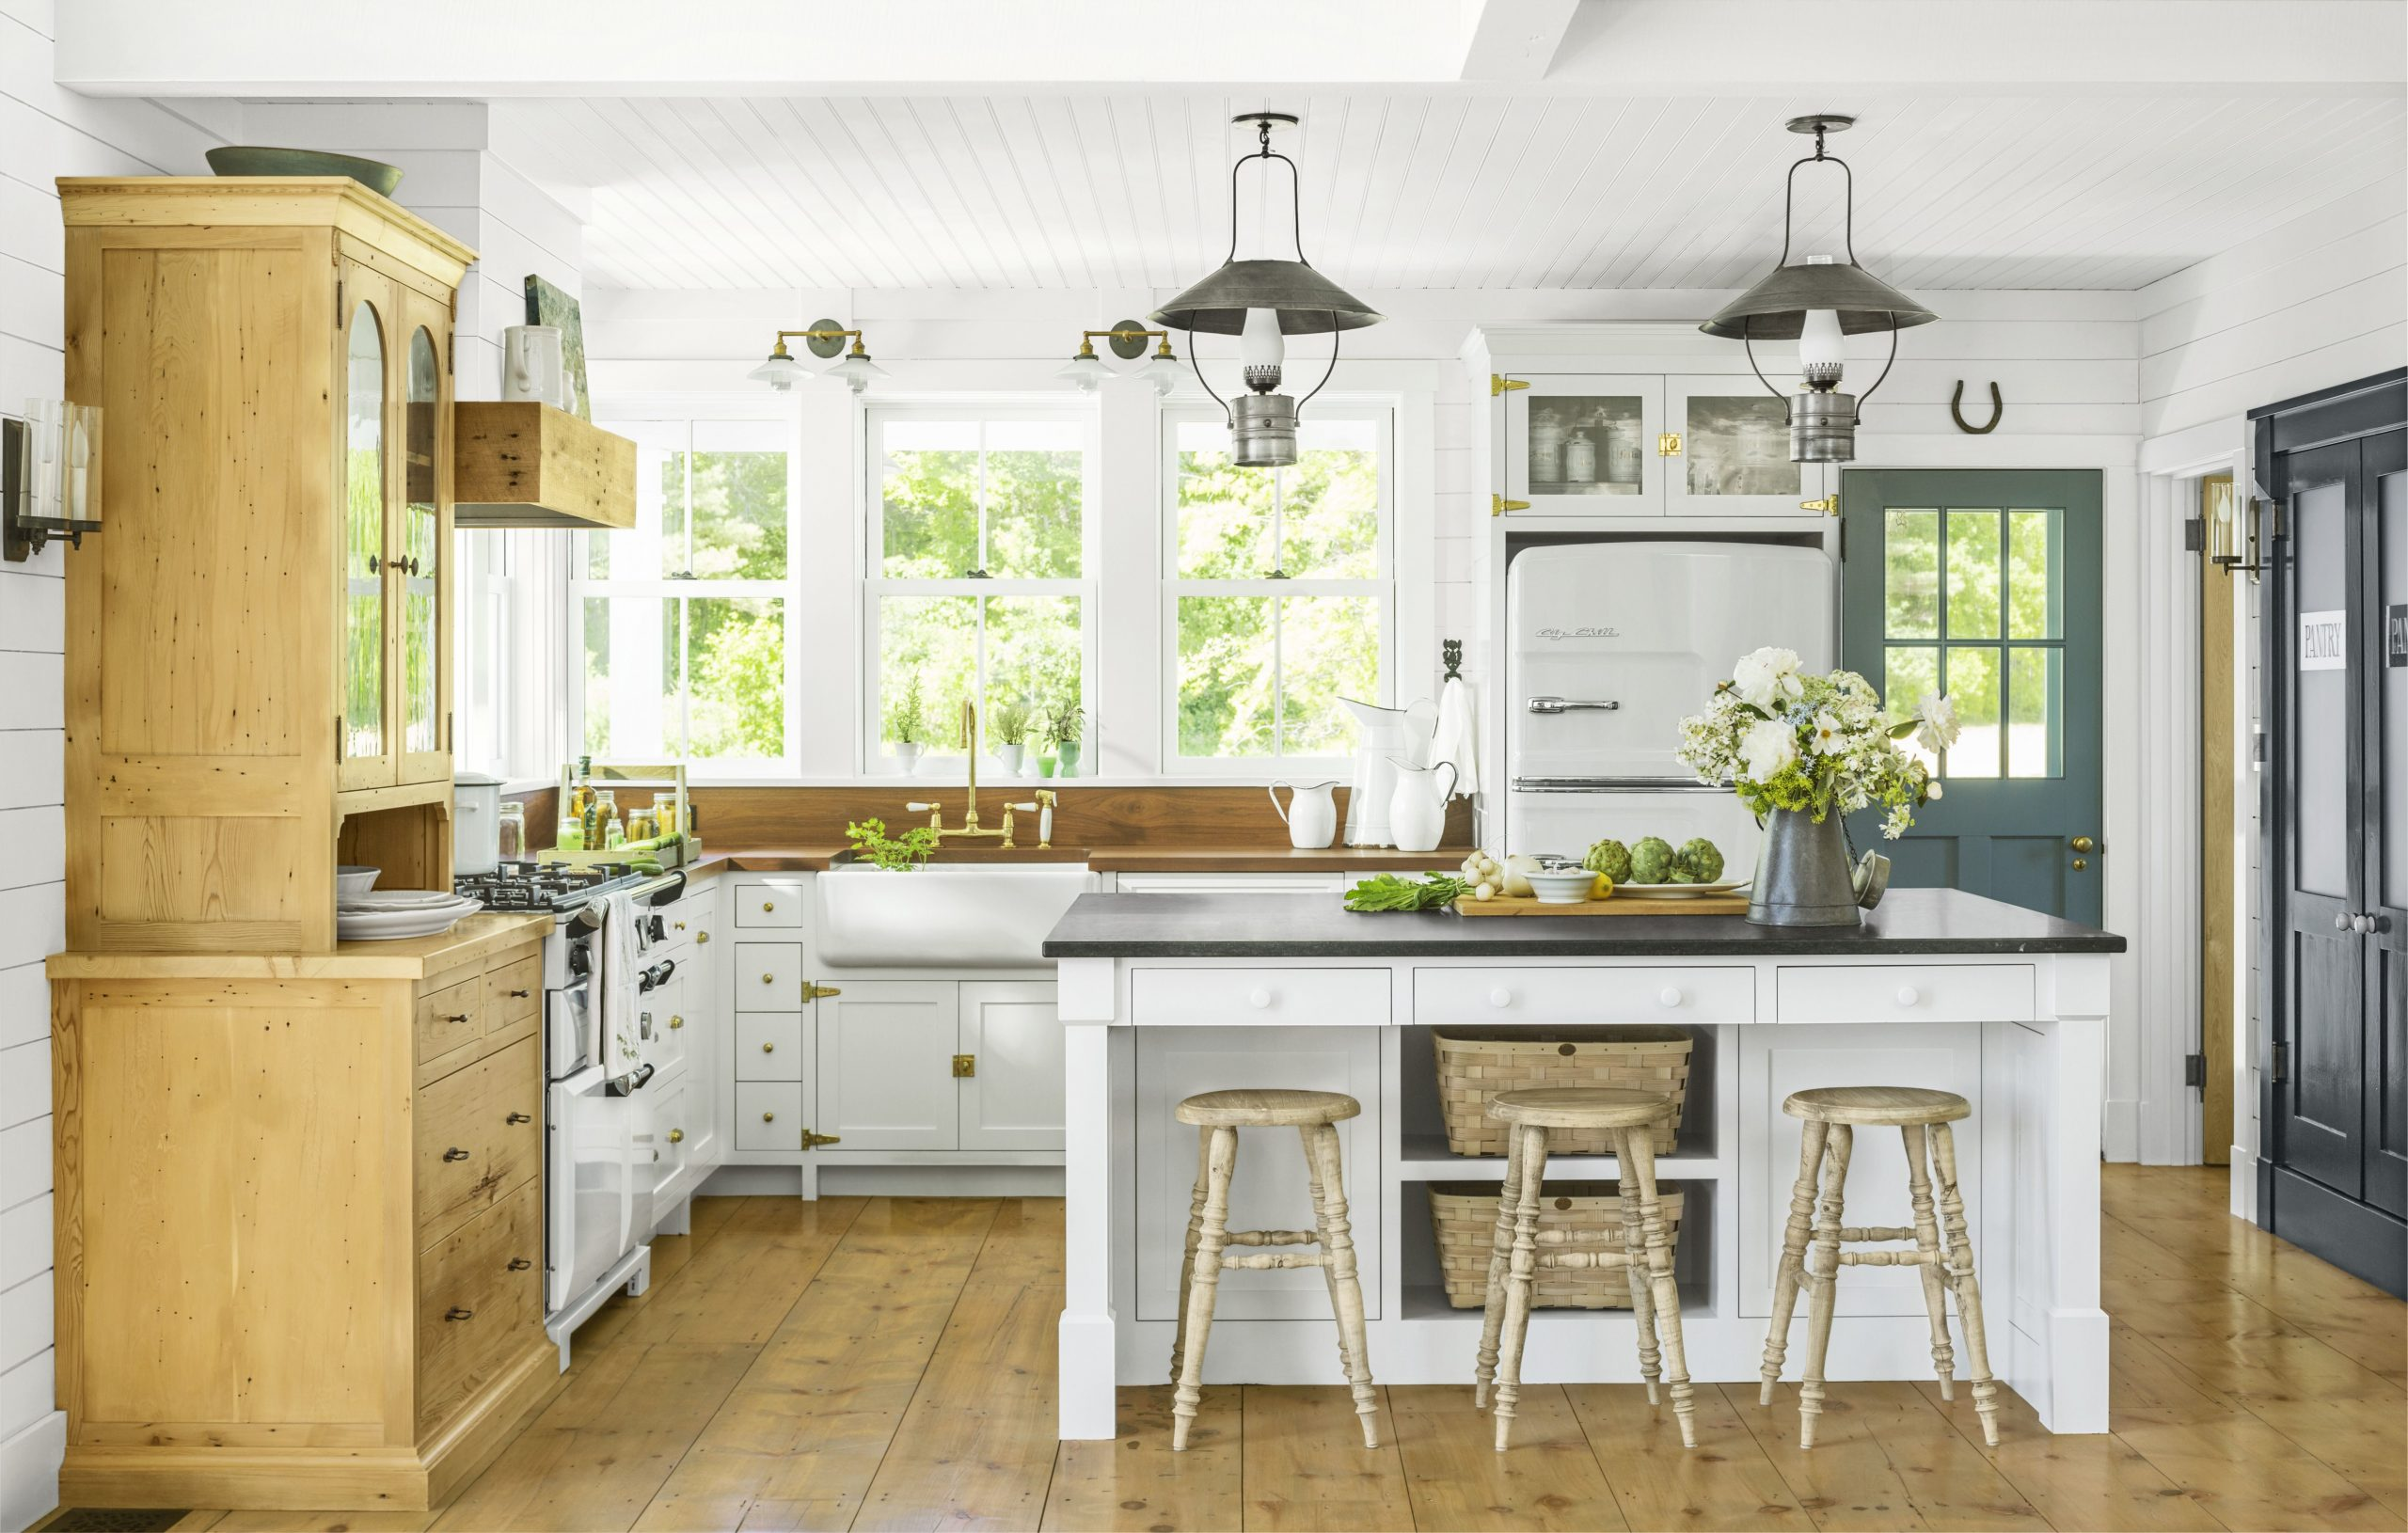 8 Best White Kitchen Cabinet Paints - Painting Cabinets White - Kitchen Cabinet Accent Paint